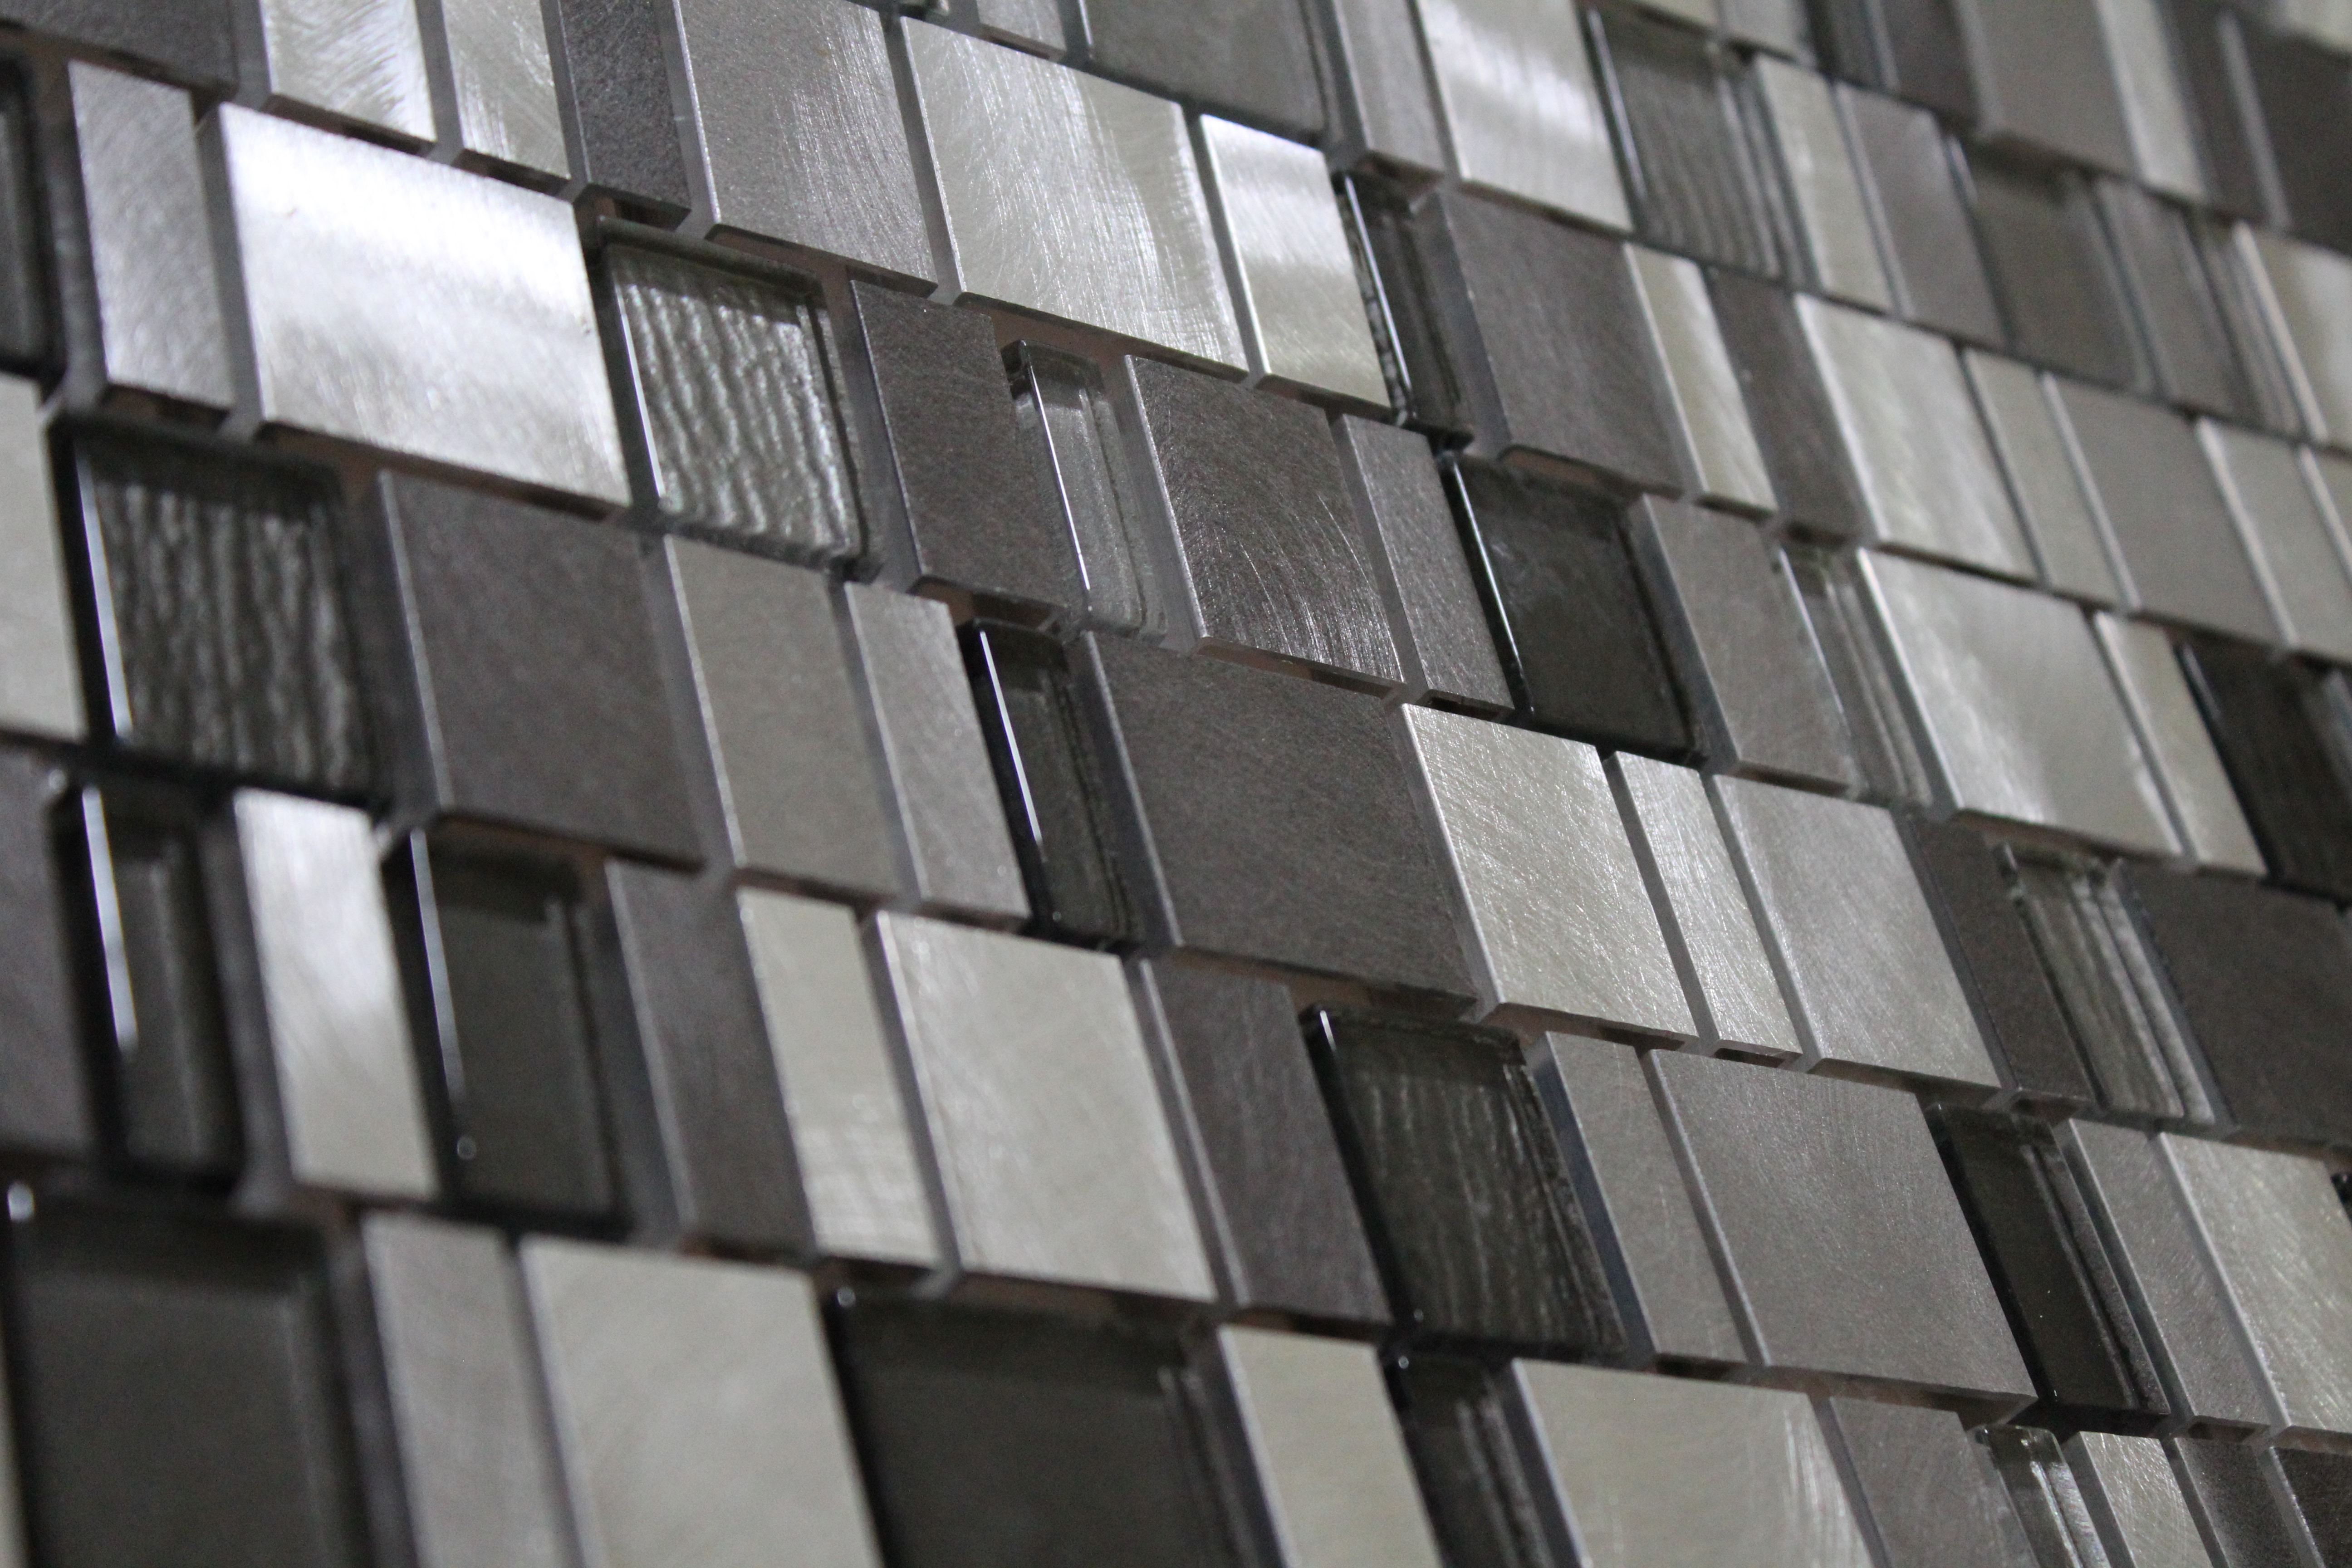 Glass Mosaic / 12 x 12 x 0.31 inches / Glossy Random Sized Squares Glass & Aluminum Mosaic Tile In Gray 0